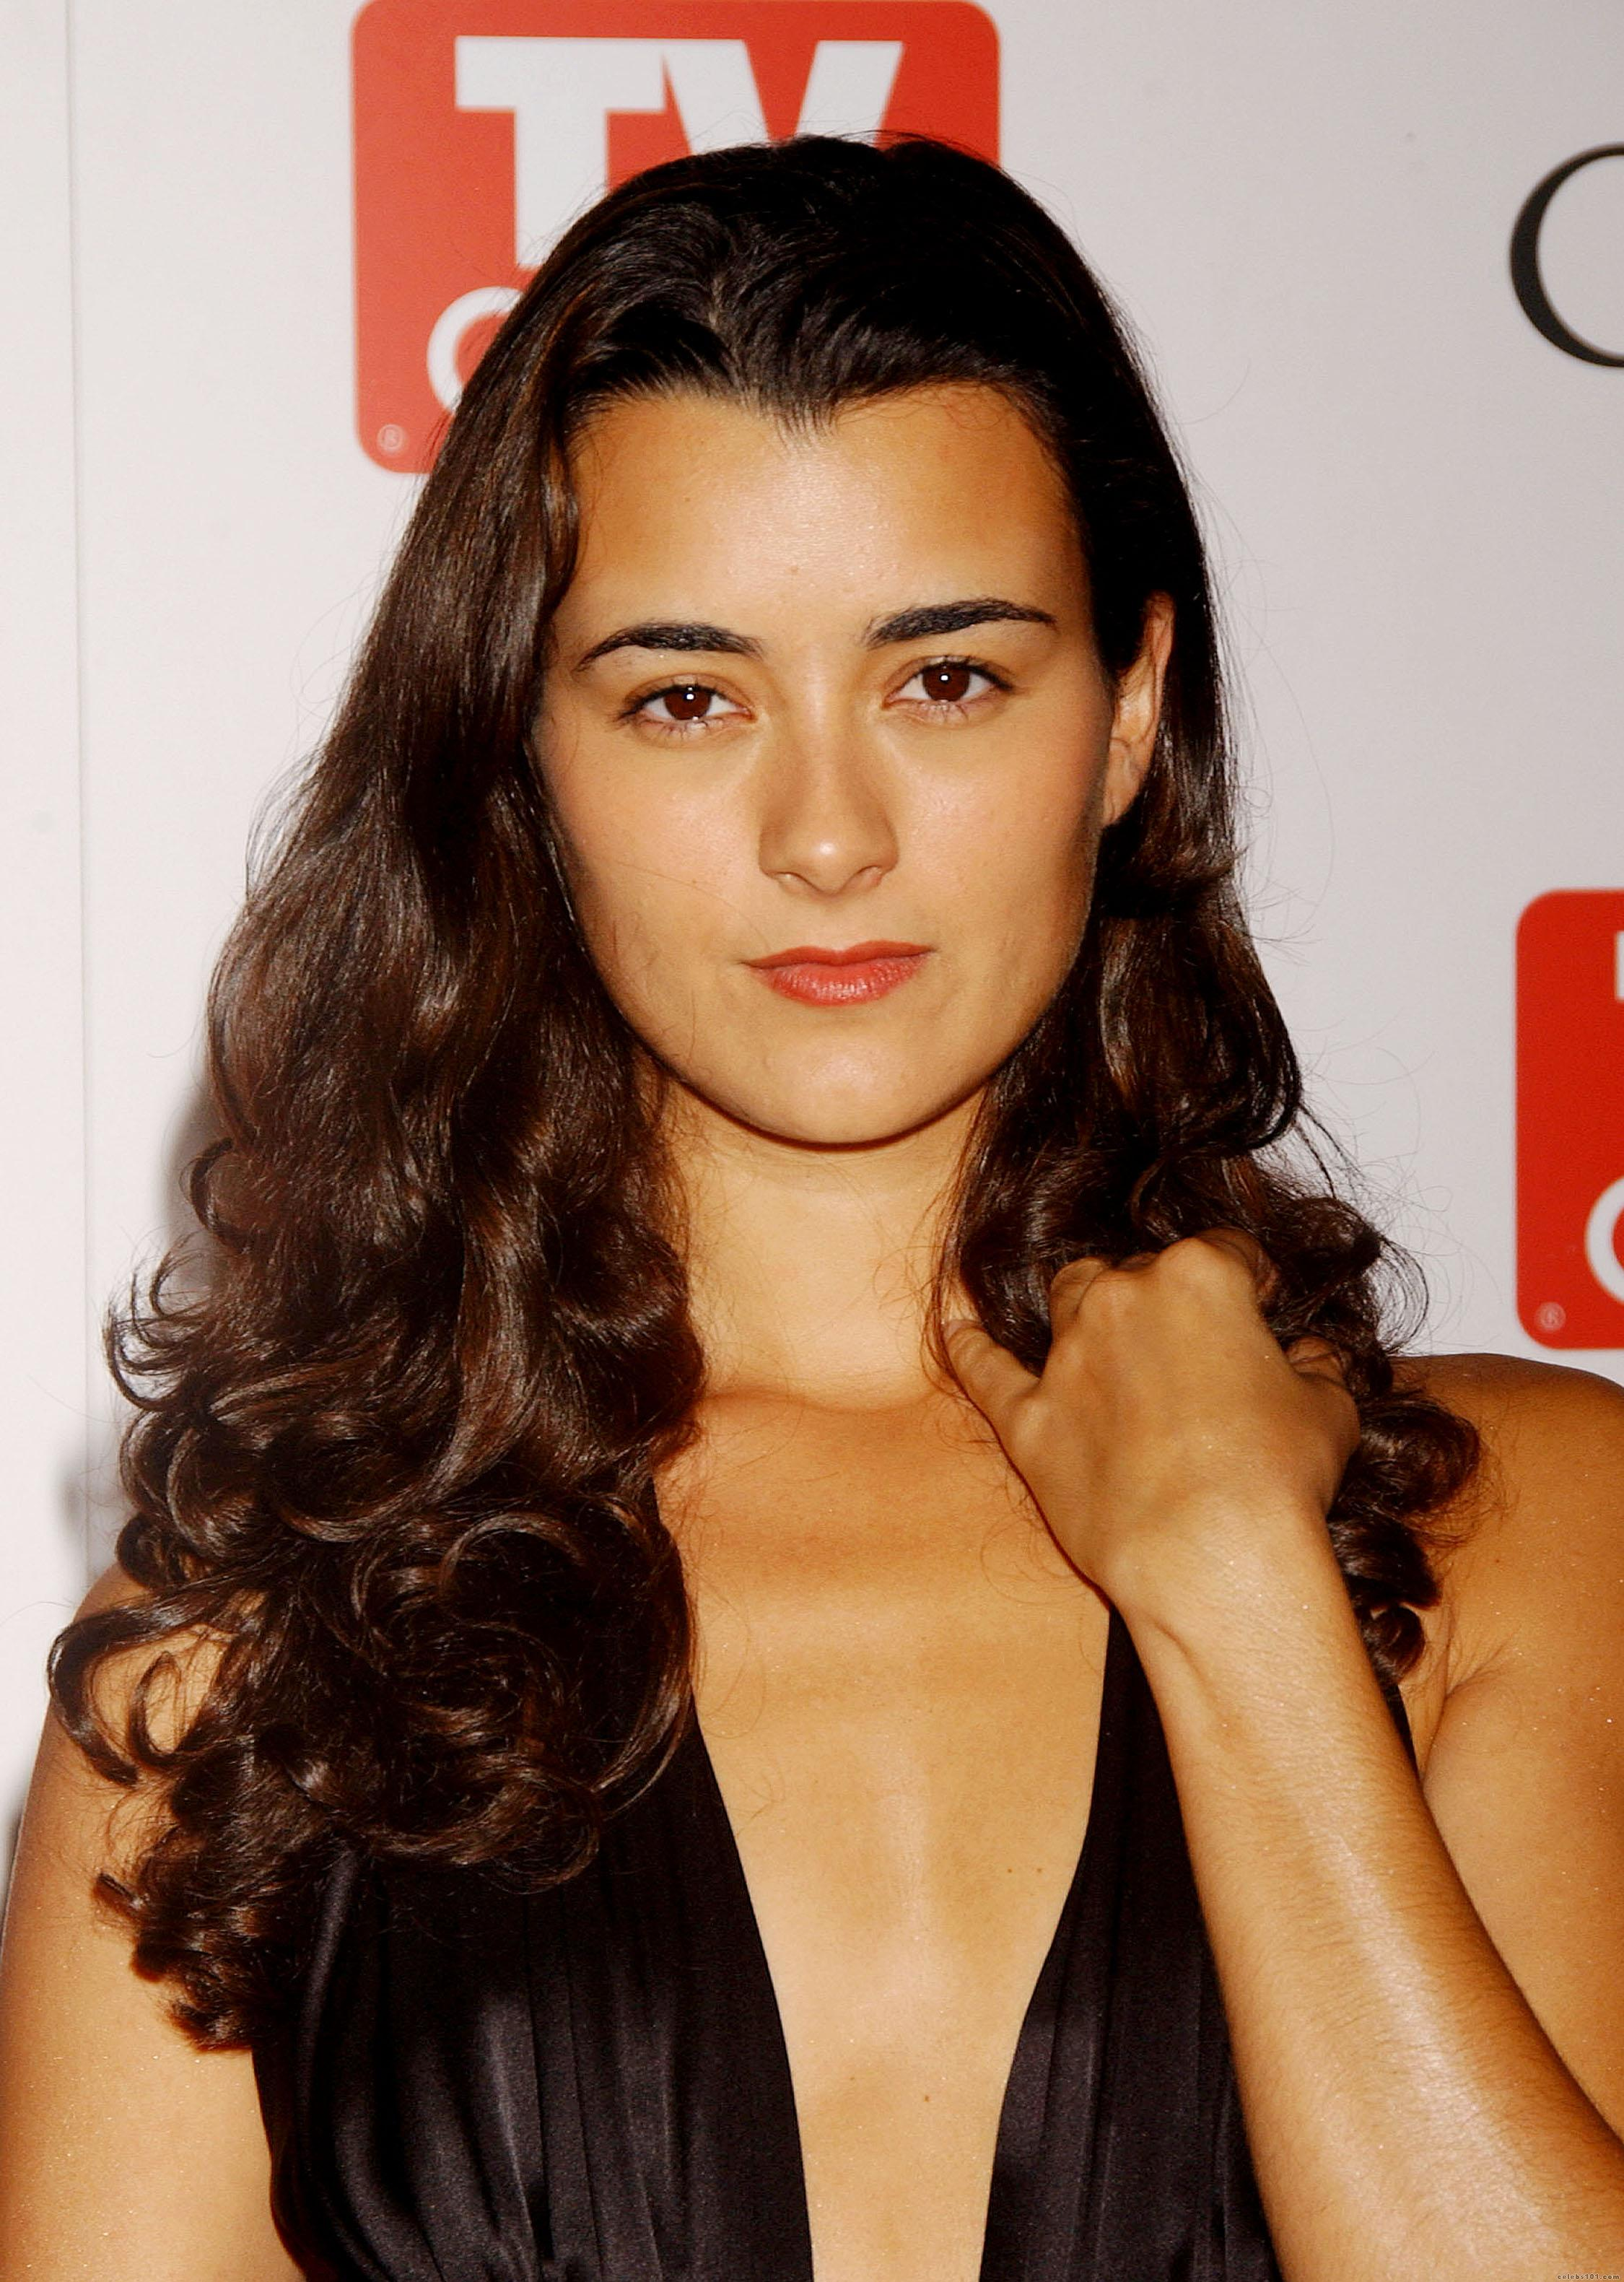 Top people cote de pablo